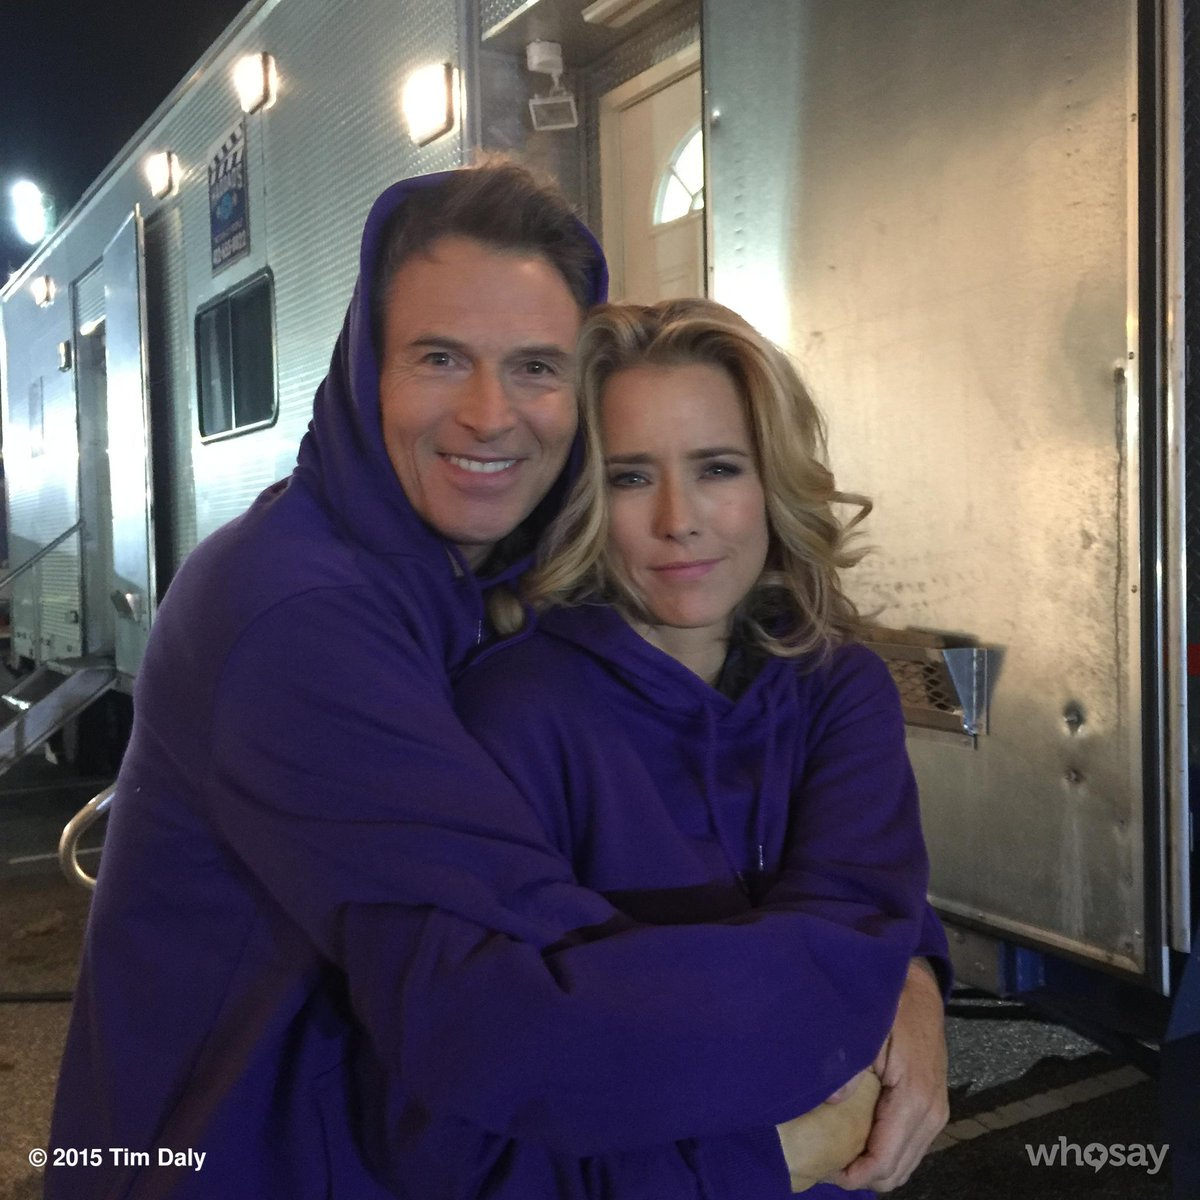 HUMANS!!! #ThrowbackThursday to #SpiritDay last week with @TheTeaLeoni - let's support LGBT youth EVERY day! https://t.co/WKdfGjUsZC